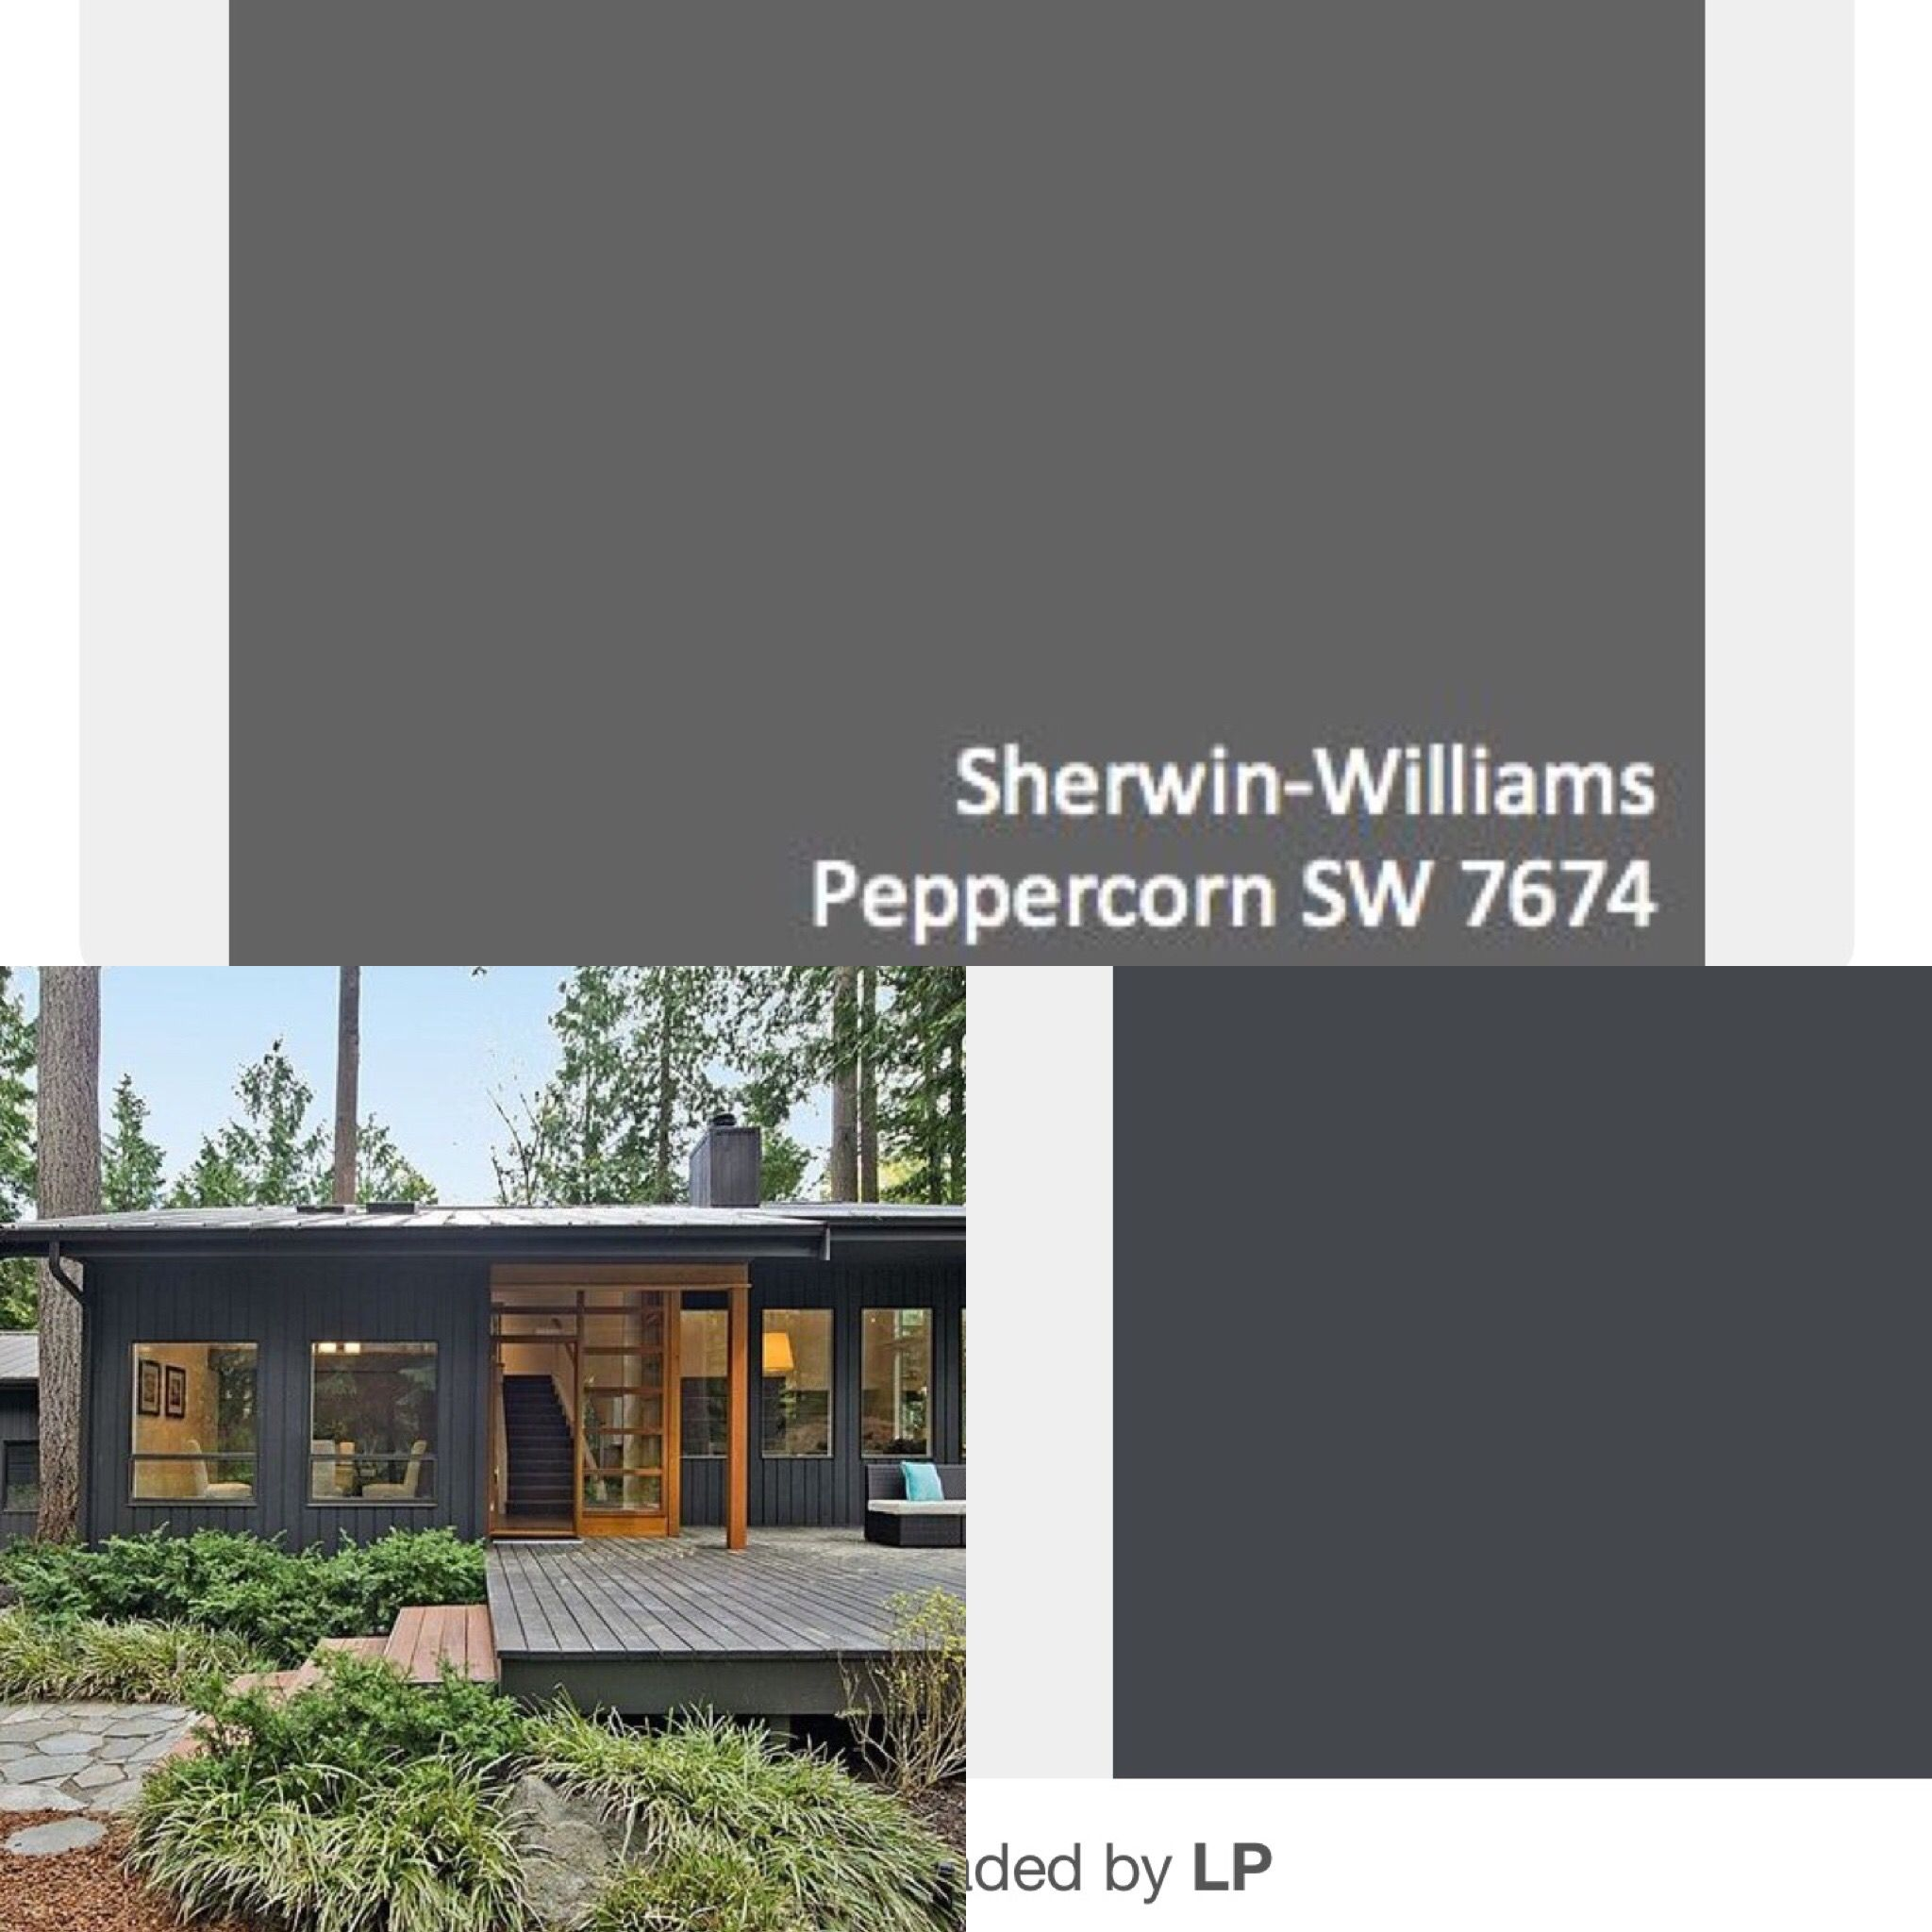 Cyberspace And Peppercorn By Sherwin Williams For The Adu